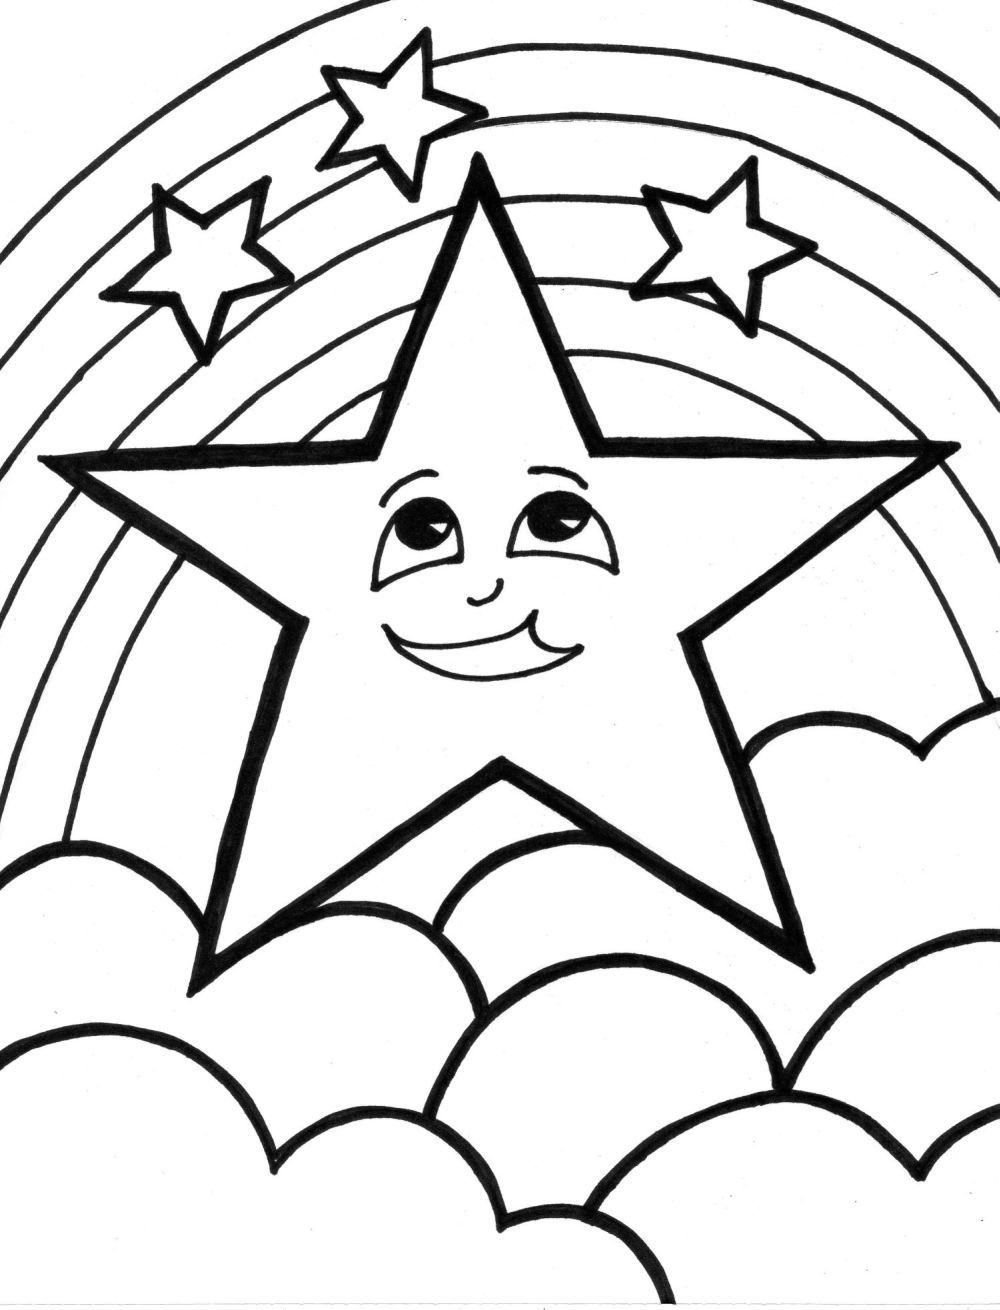 1000x1310 Flower Wallpaper Star Coloring Pages That Brings Smiles